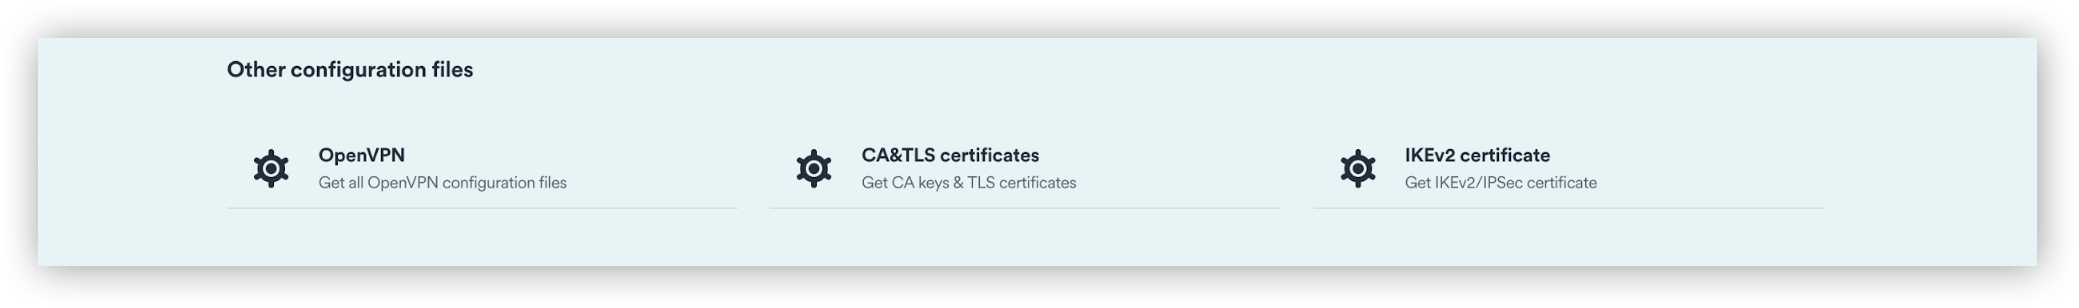 Select the IKEv2 certificate